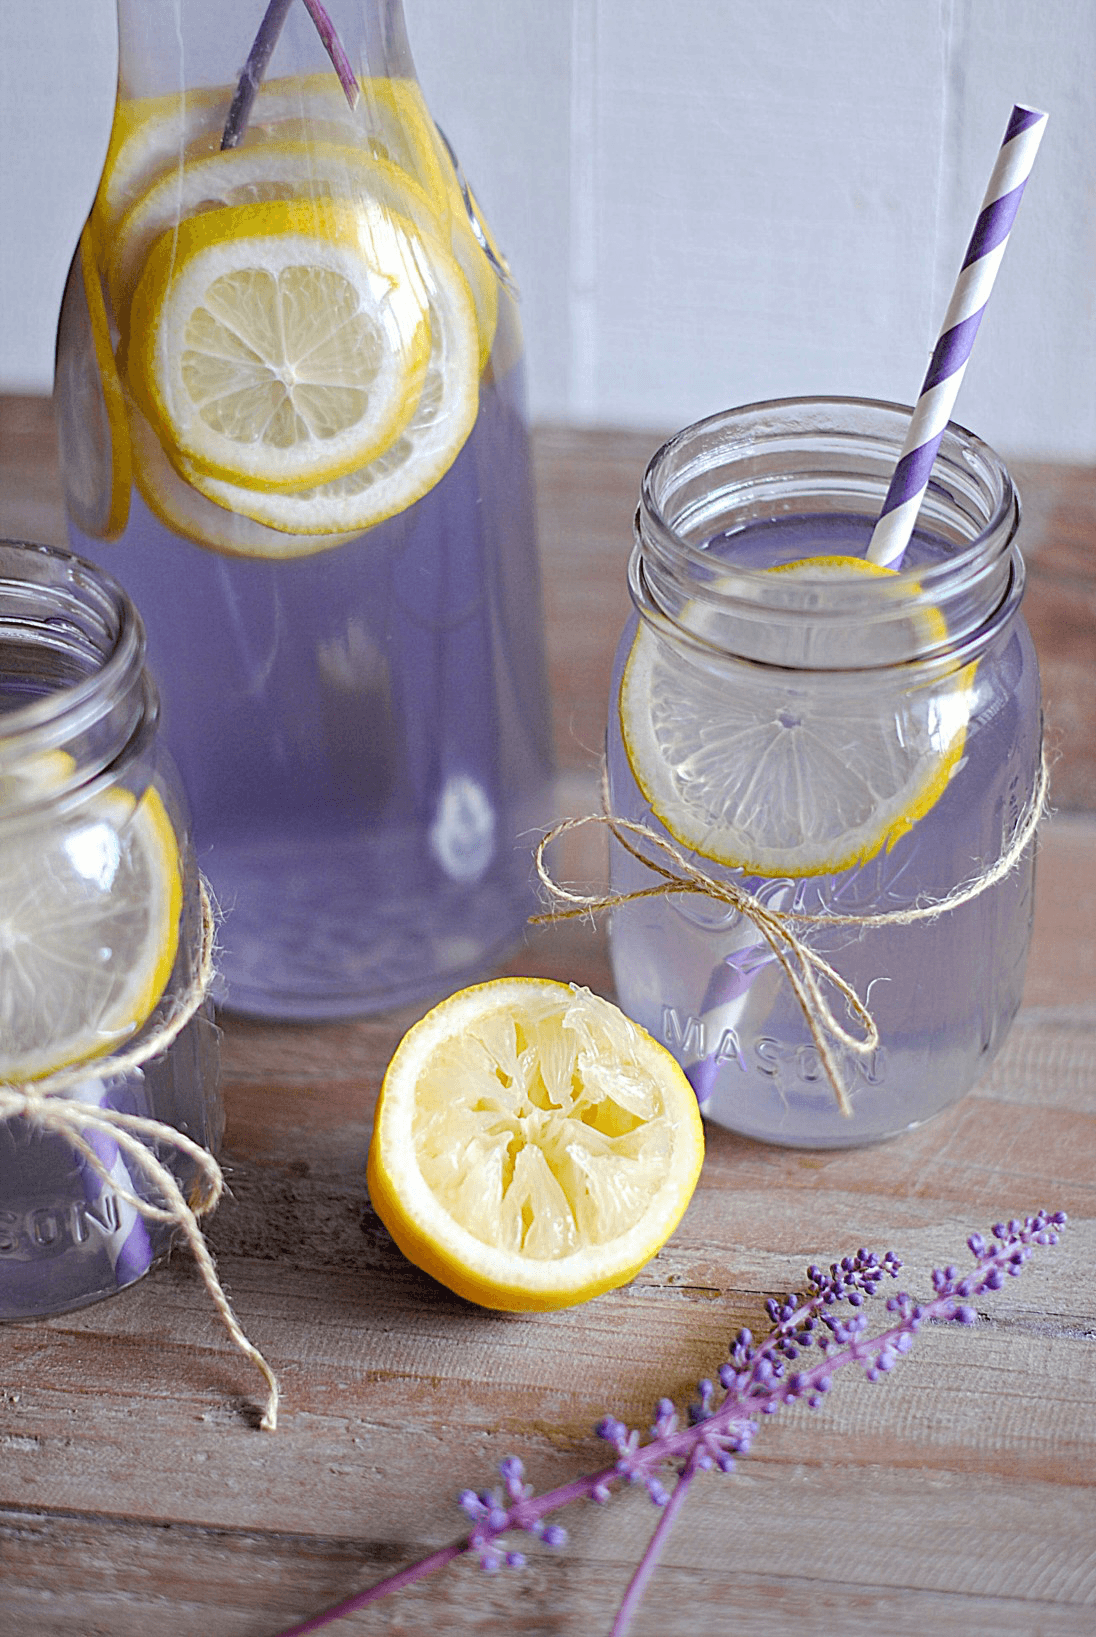 Make Weight Loss A Spa-Like Experience With These 16 Infused Water Recipes- Looking for the best infused water recipes for weight loss? We've got 16 healthy fruit infused water recipes that are perfect for fat burning! Whether you're looking for a flatter tummy, or an apple cider vinegar fat flush, or prefer a fruity metabolism boosting infused drink this list has you covered! Kick off your weight loss fitness plan with one of these all-natural infused water recipes! You'll be so happy you did! #detoxwater #weighloss